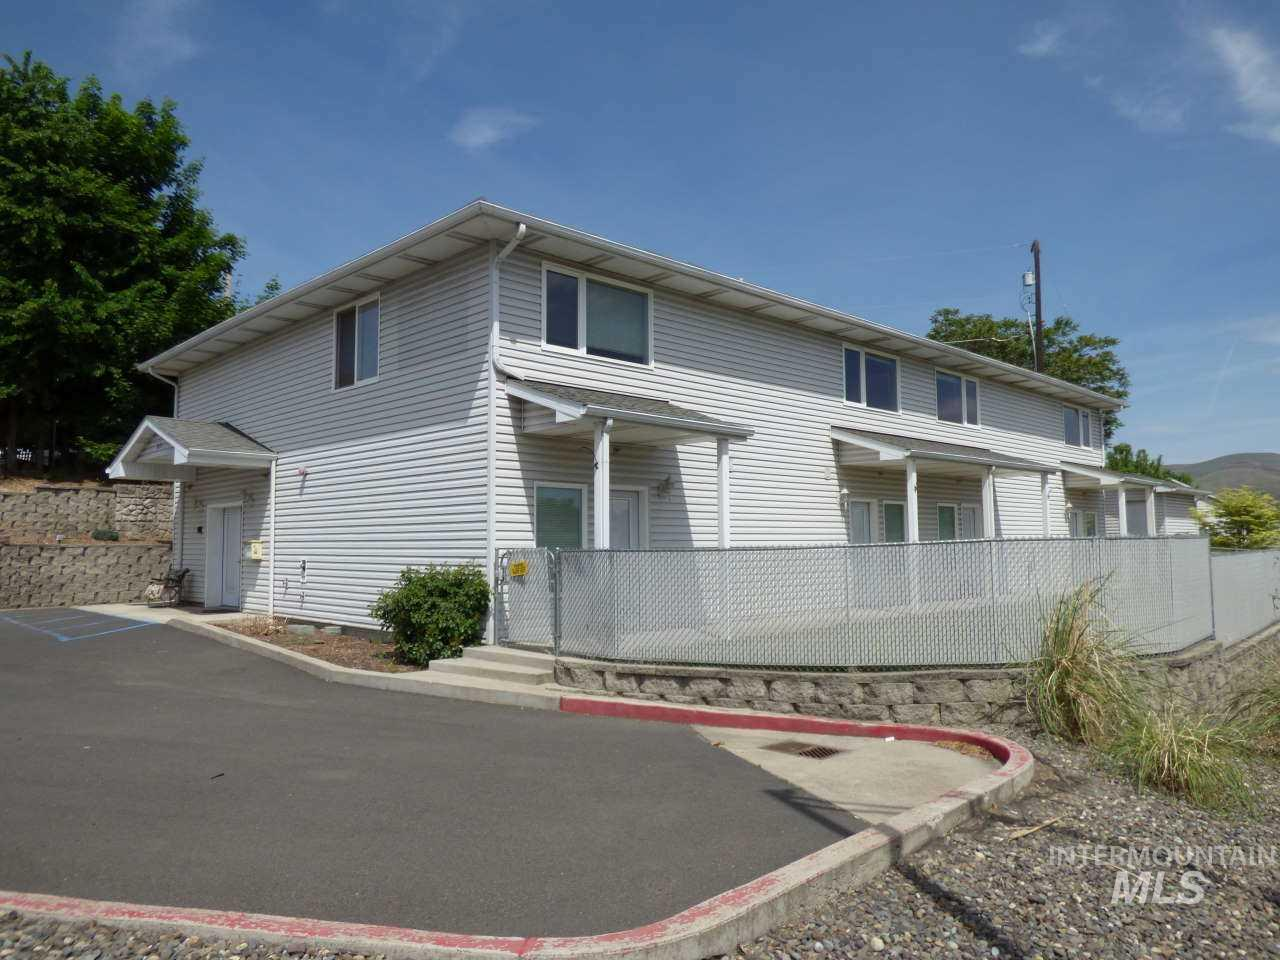 1633 10th Ave, Lewiston, Idaho 83501, Business/Commercial For Sale, Price $700,000, 98729308